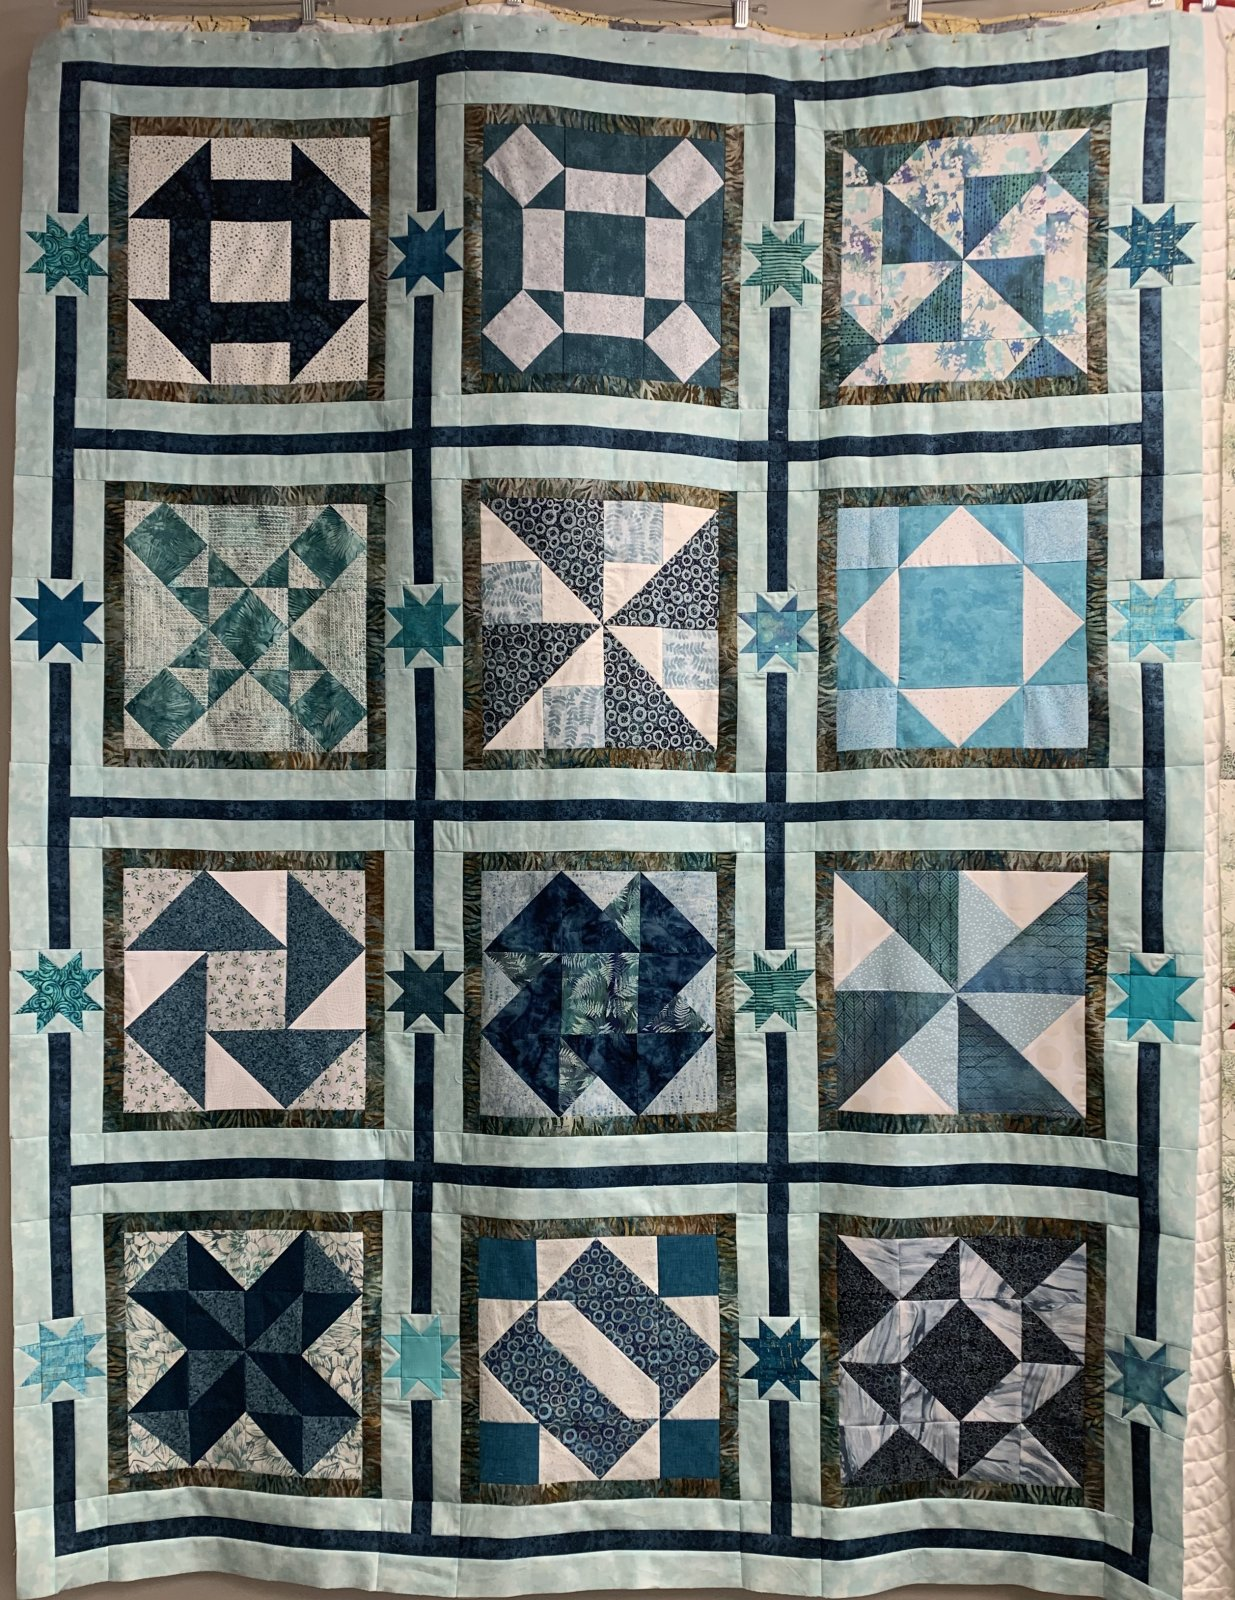 2020 Teal Sampler Quilt Kit